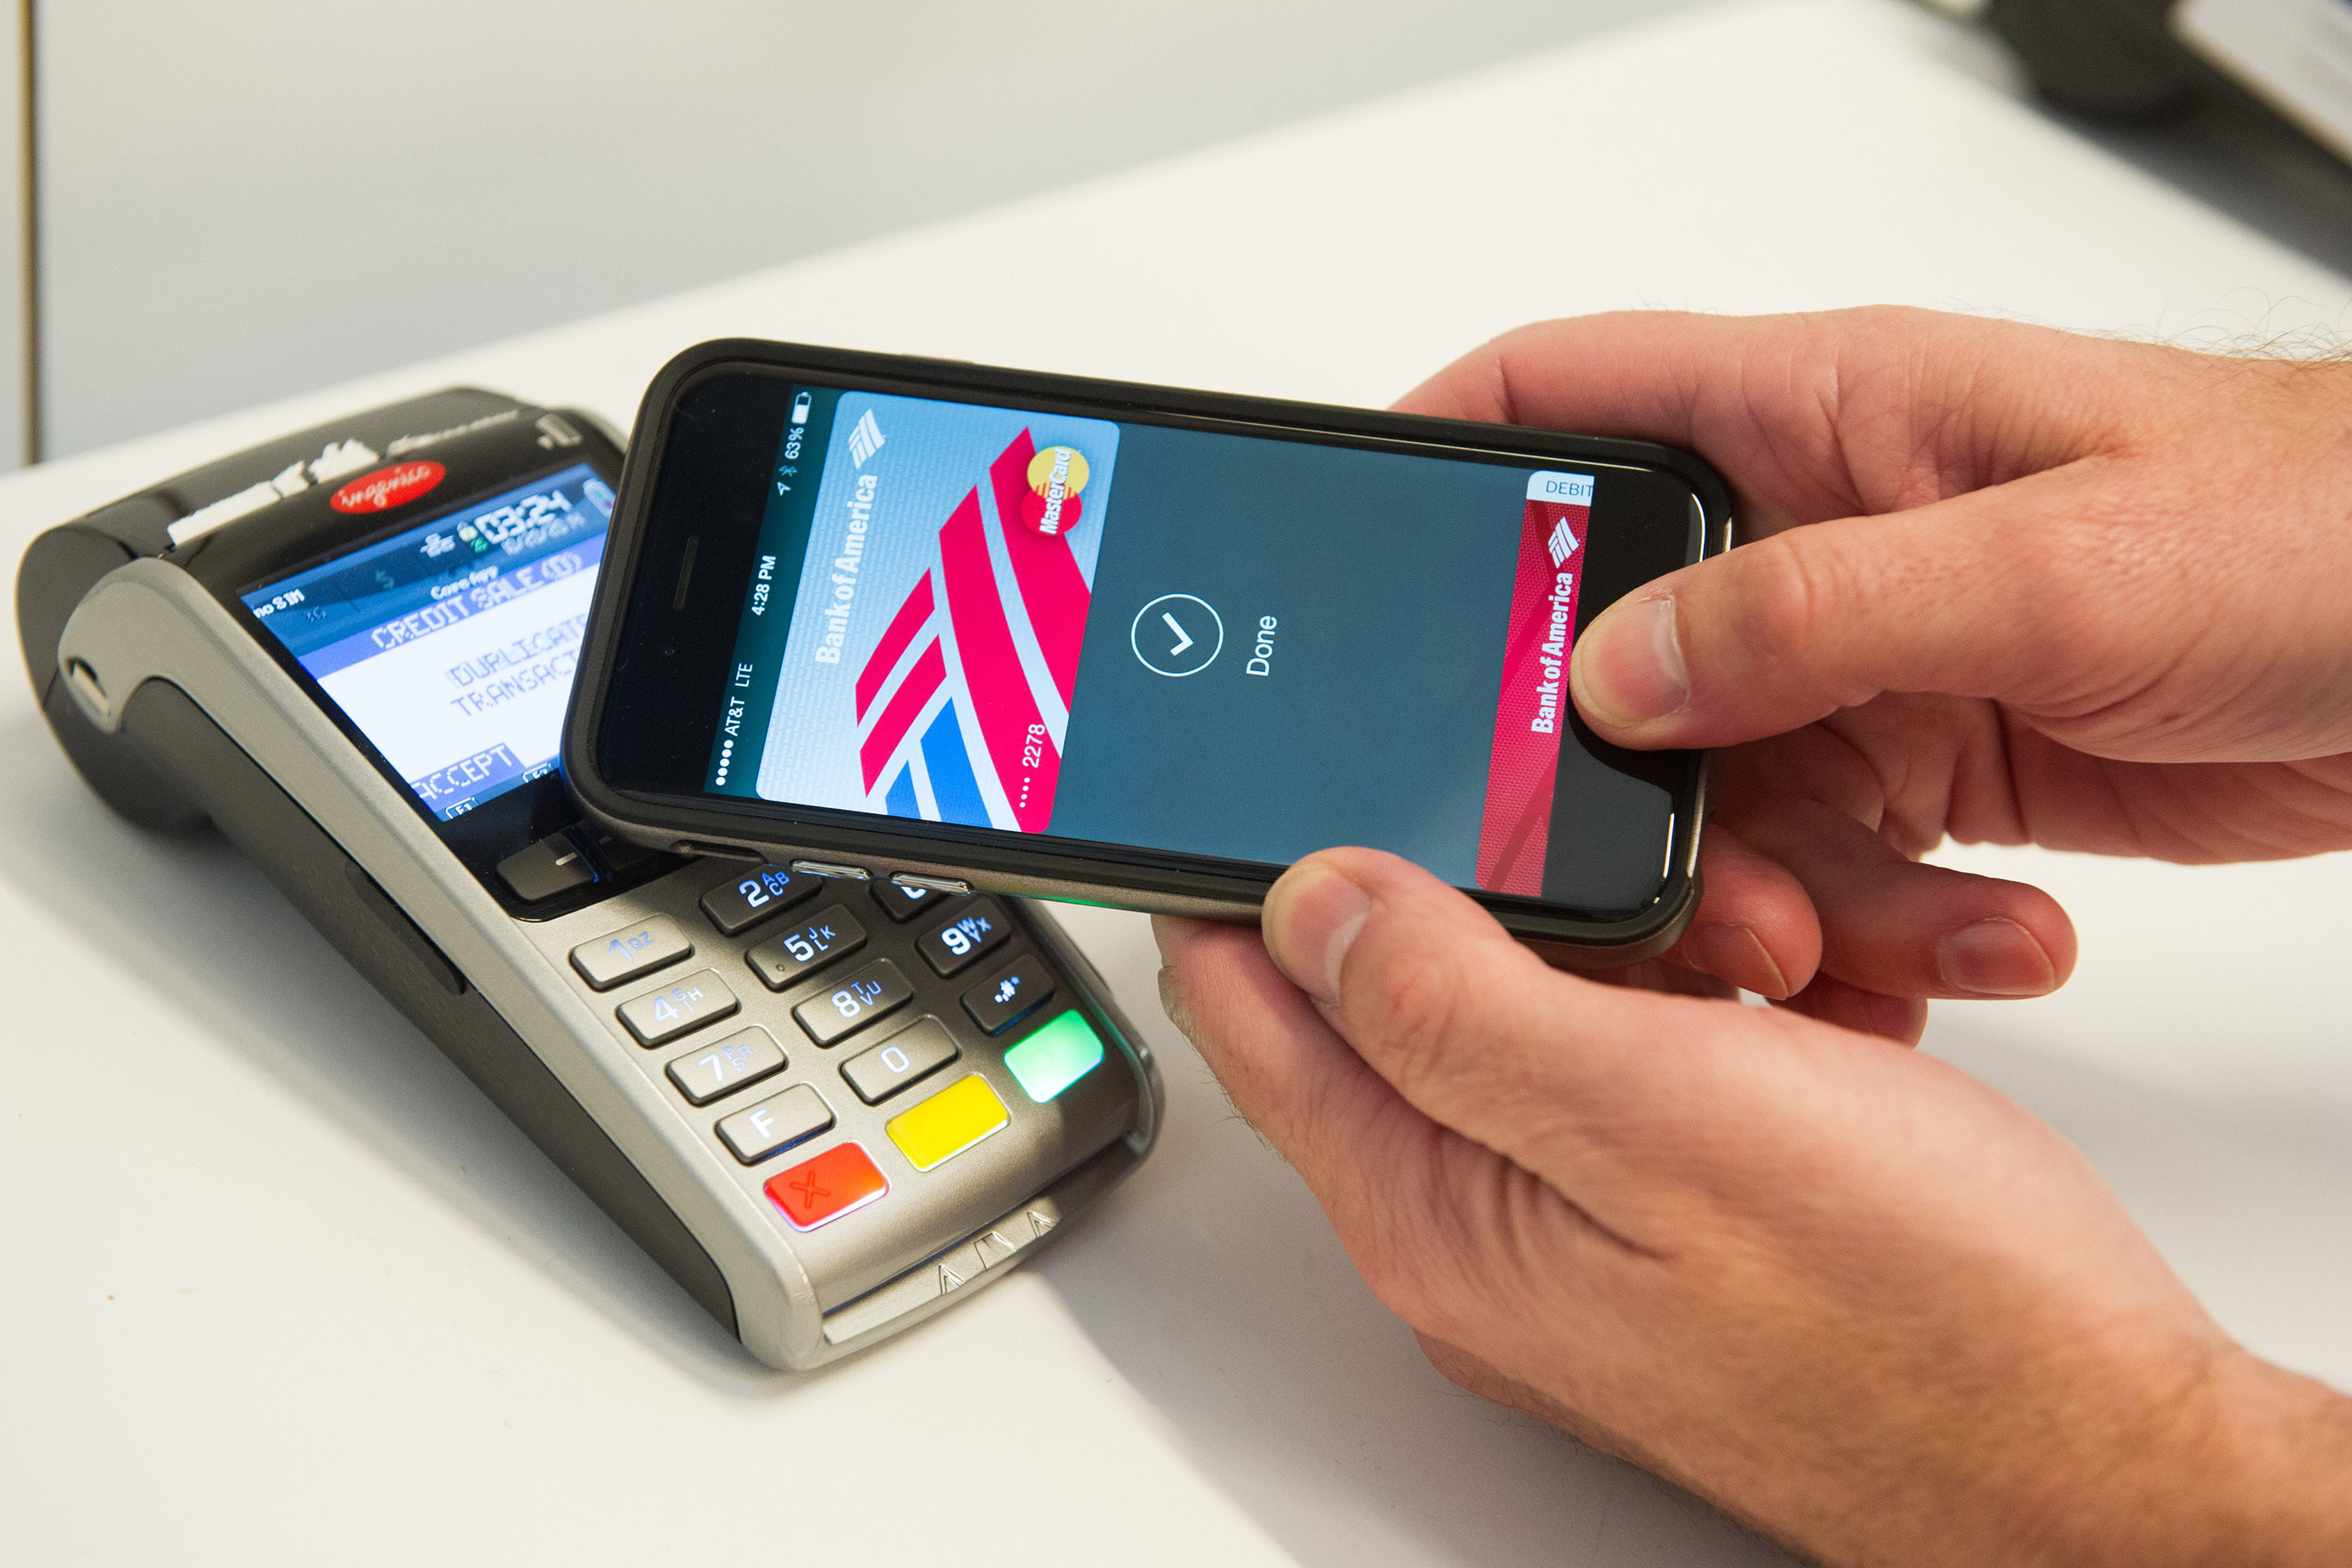 MasterCard demonstrates Apple Pay at the launch of MasterCard's NYC Tech Hub on Monday, Oct. 20, 2014 in New York.